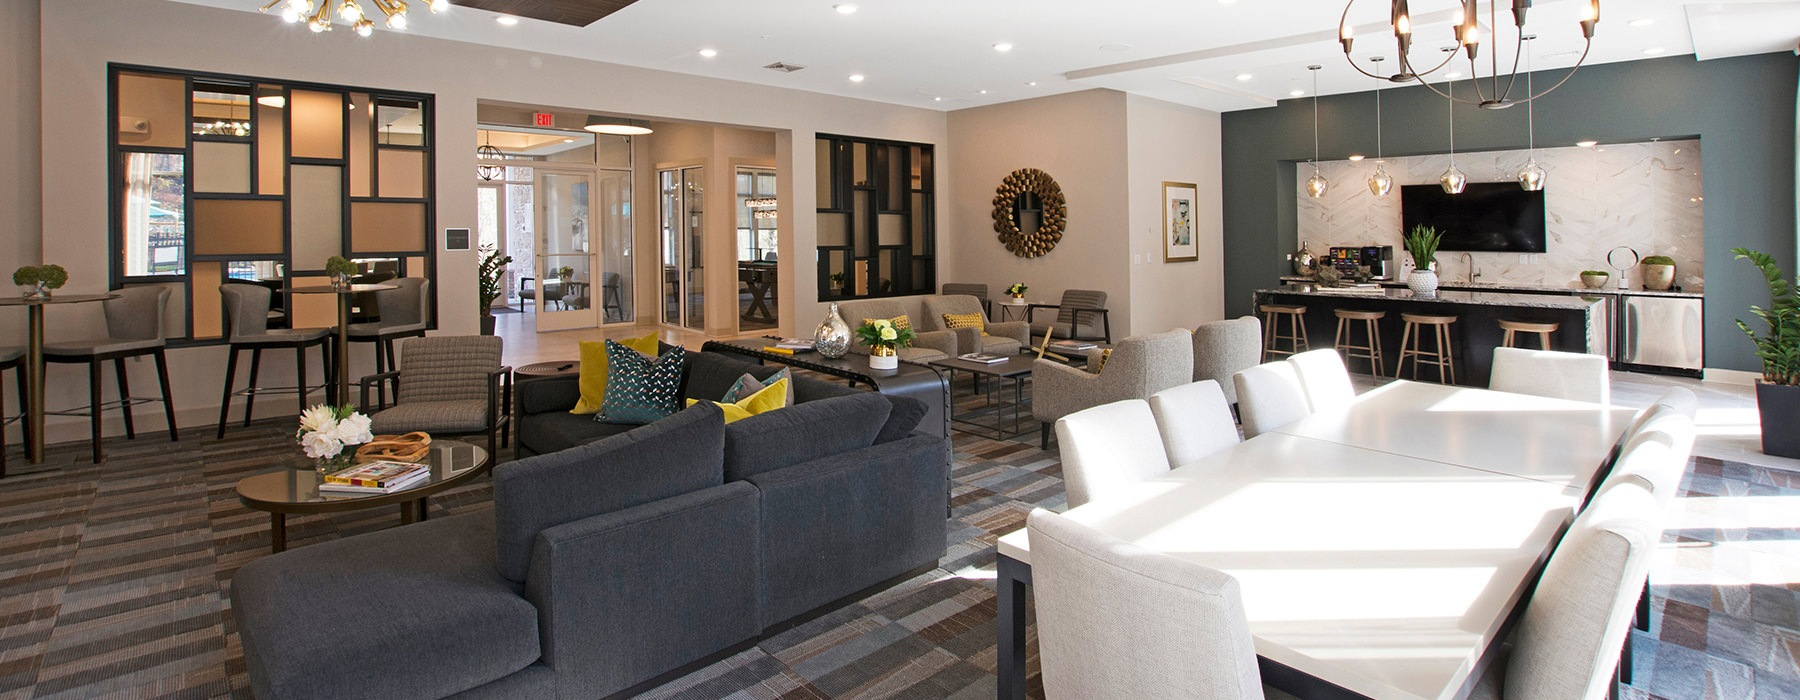 Clubhouse with a large table and lounge seating